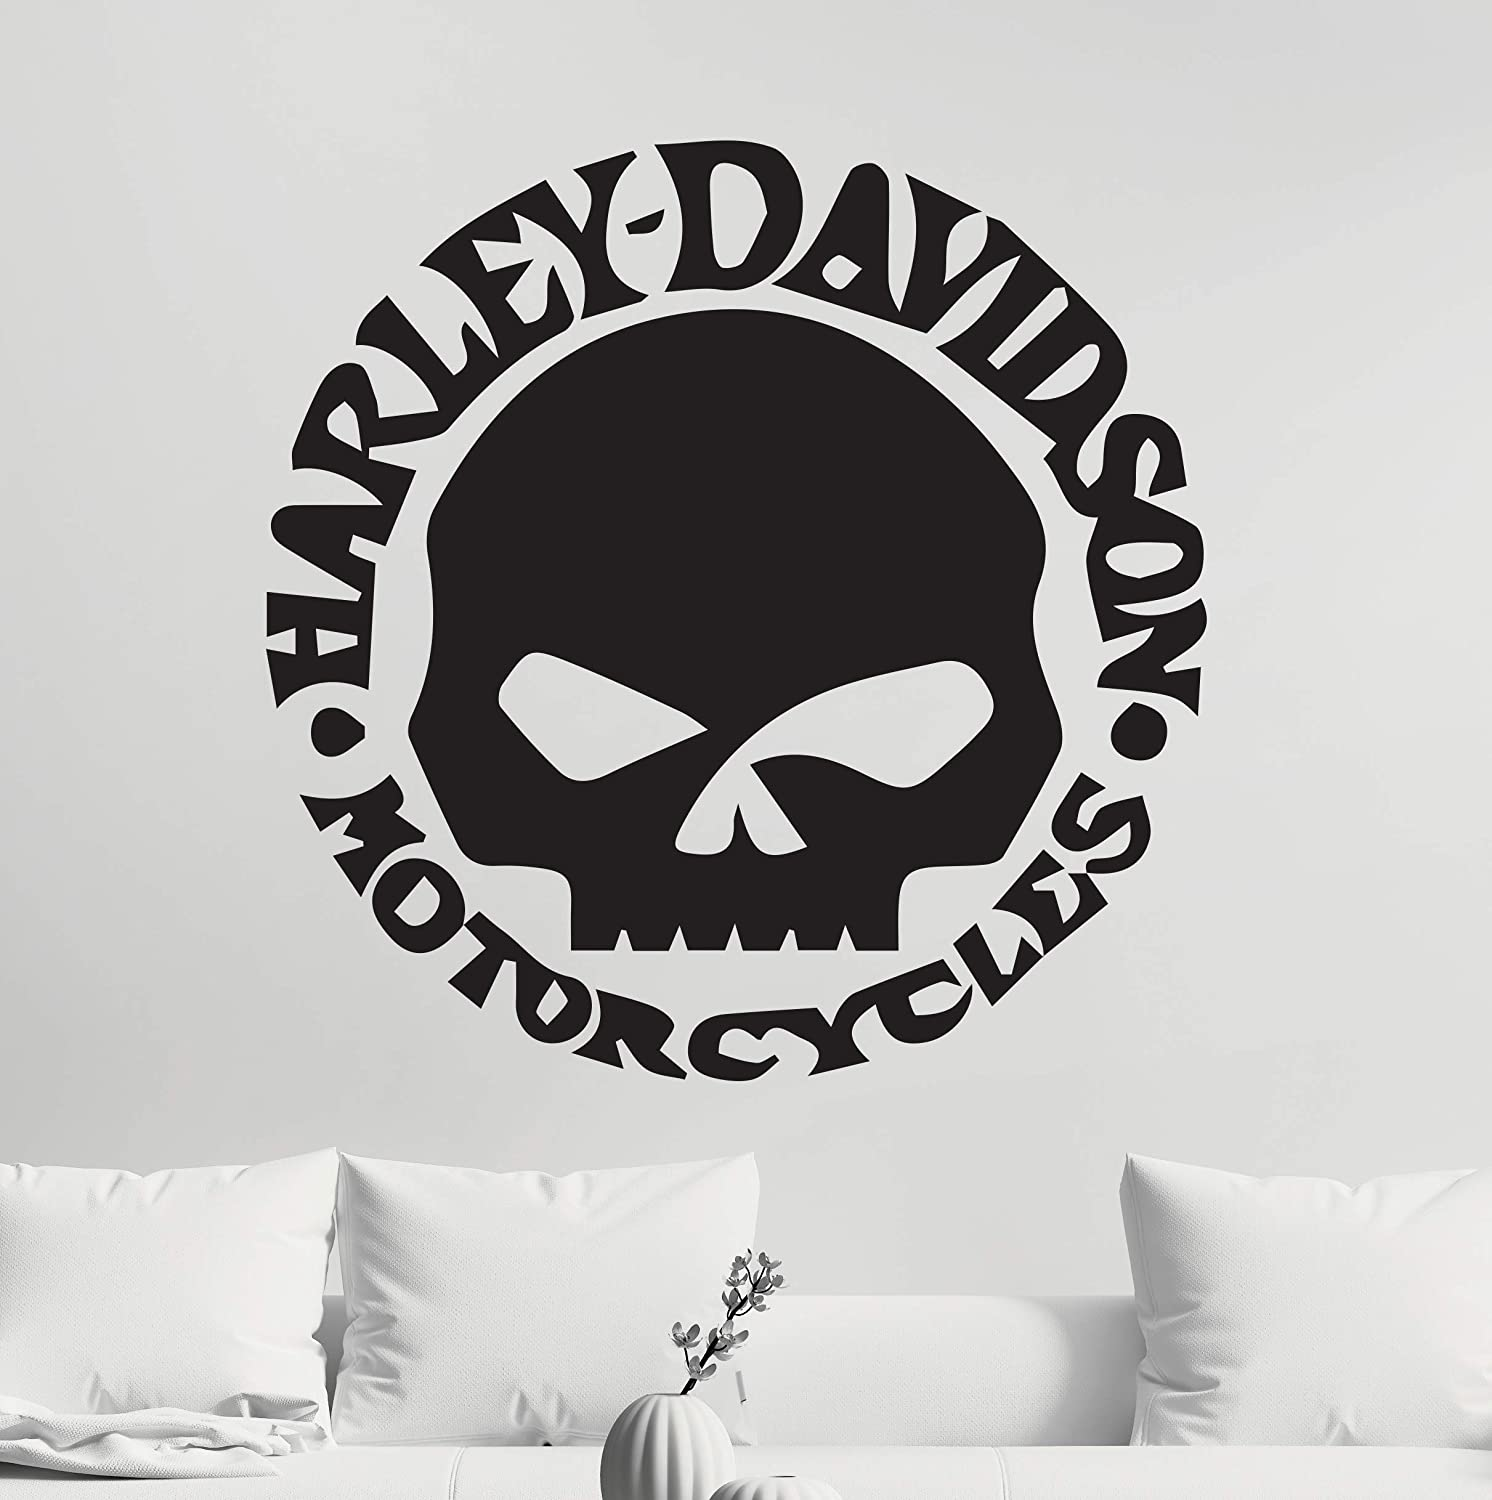 """ManukaDesigns Harley Davidson Wall Decal - Motor Cycles Themed Vinyl Sticker - The Great American Freedom Machine Bedroom Living Any Room Home Decoration CG454 (22"""" Width x 22"""" Height)"""